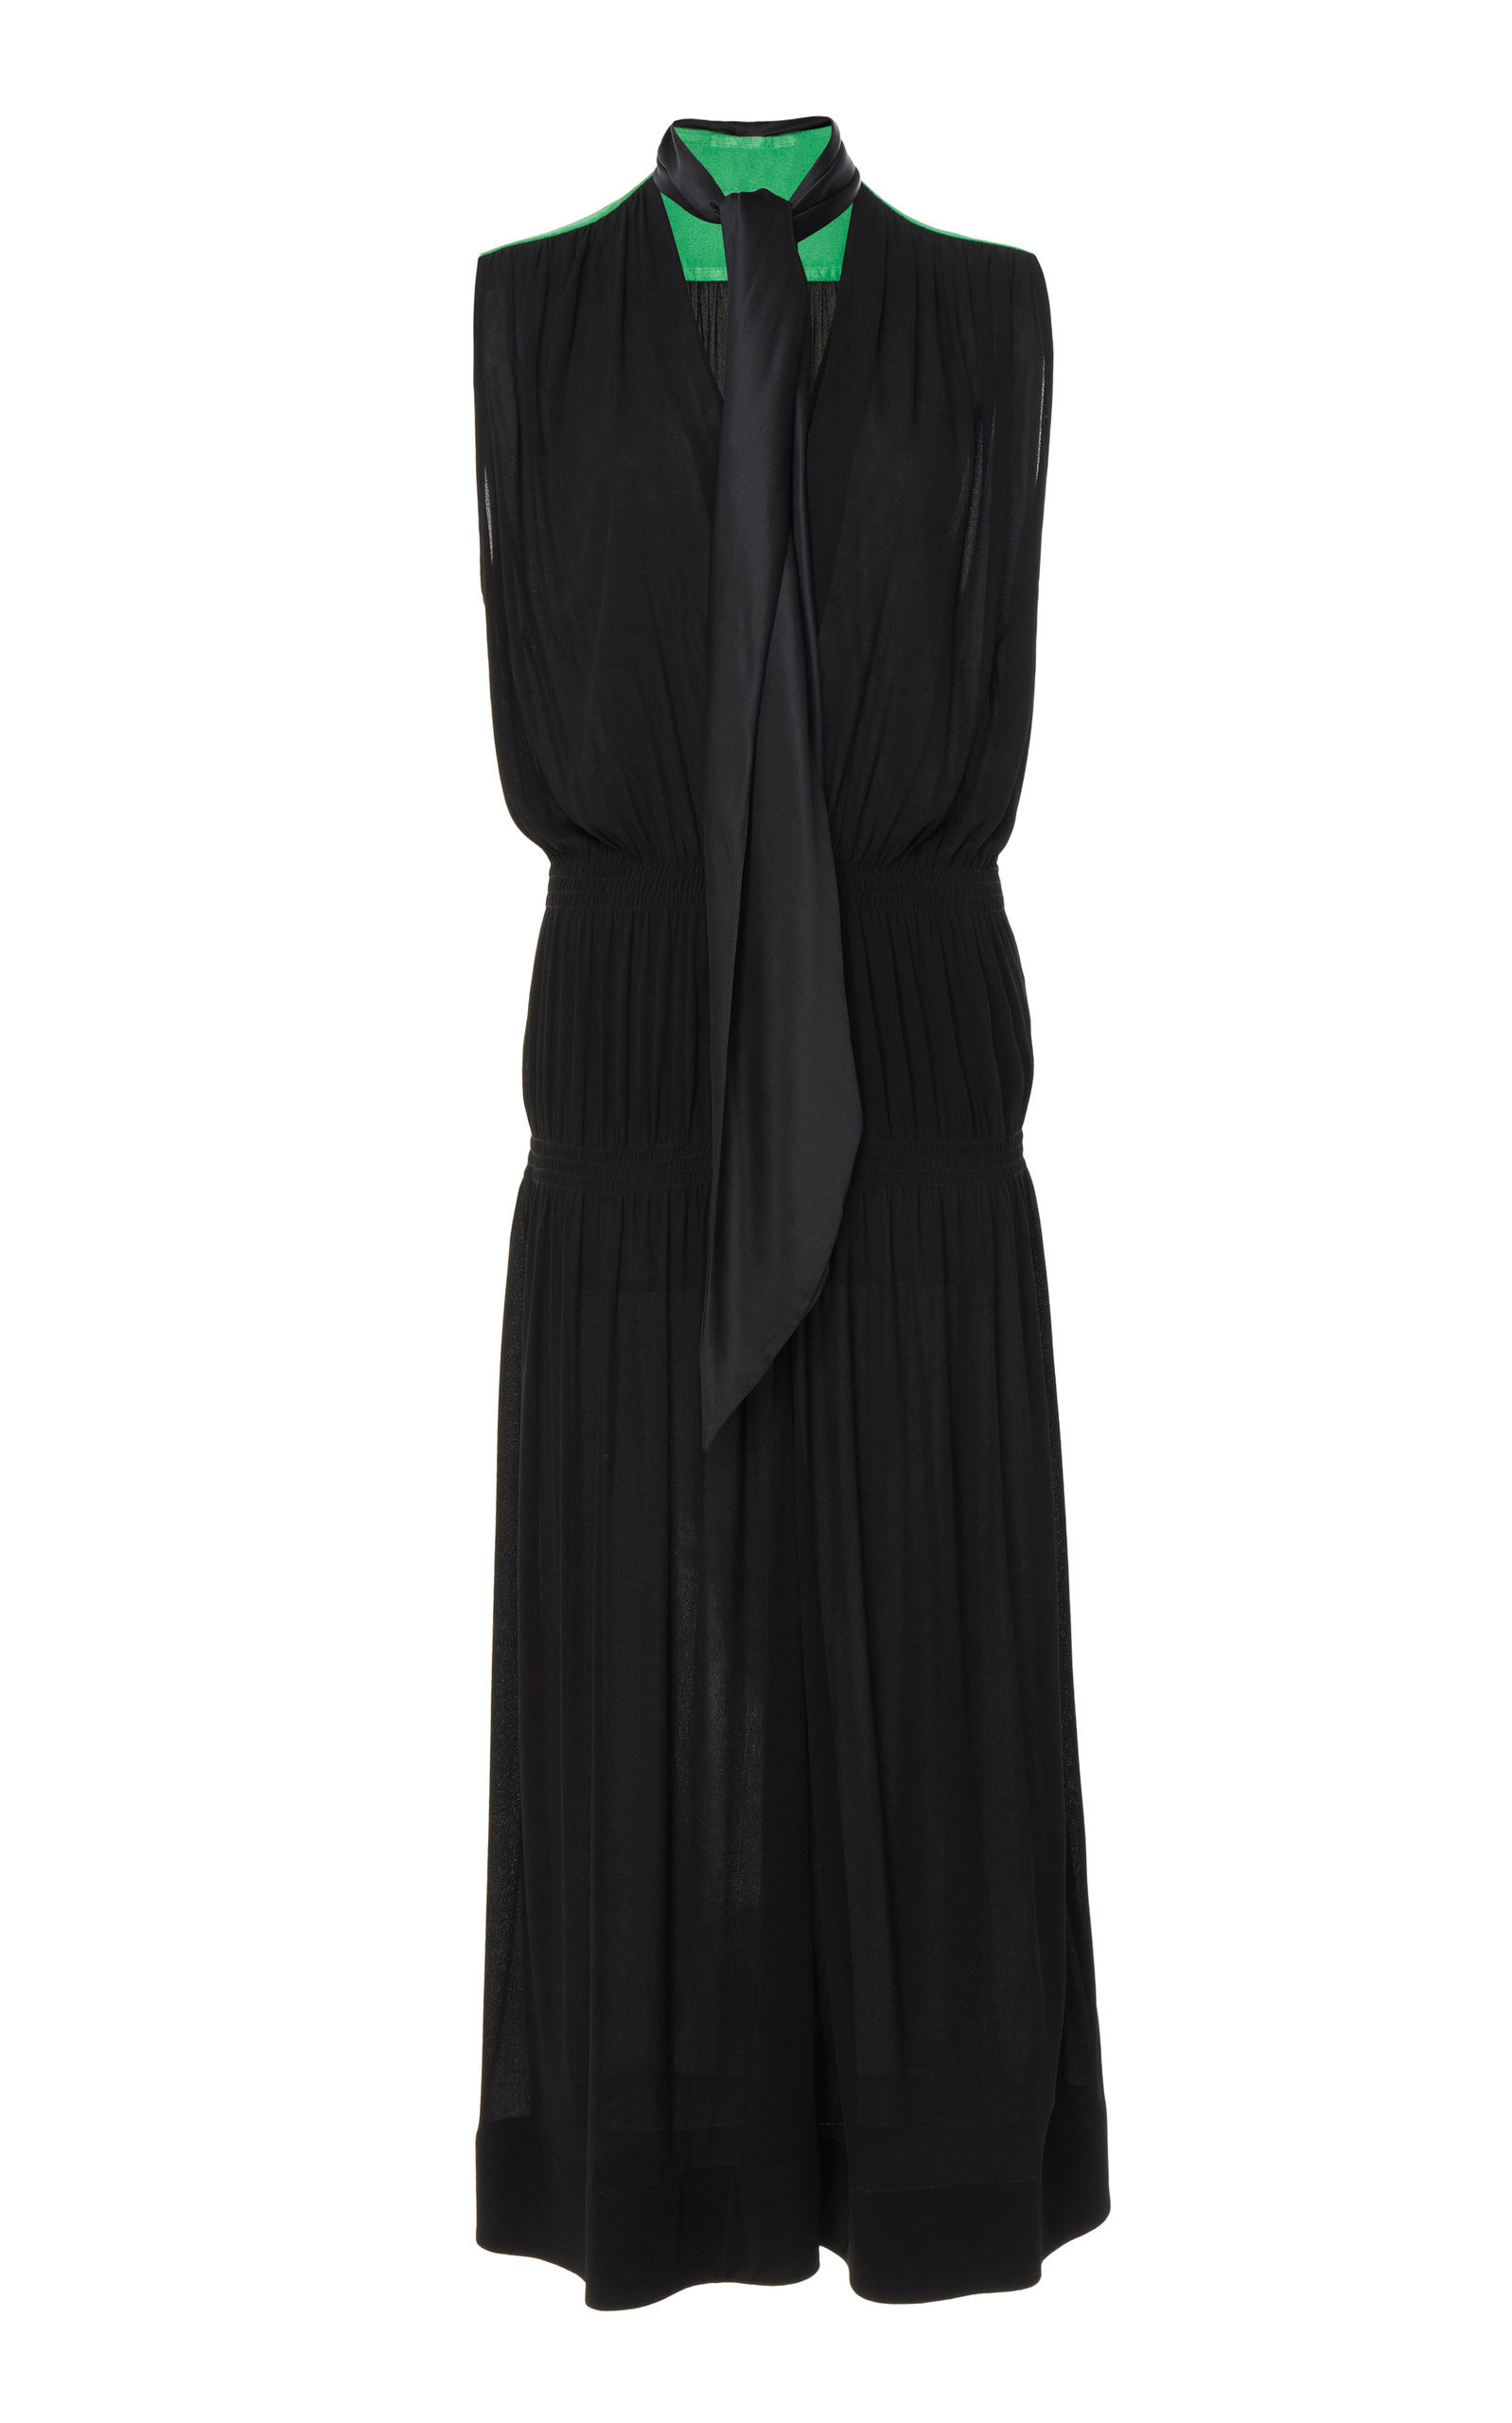 Givenchy Dress Two-Tone Tie-Detailed Georgette Midi Dress